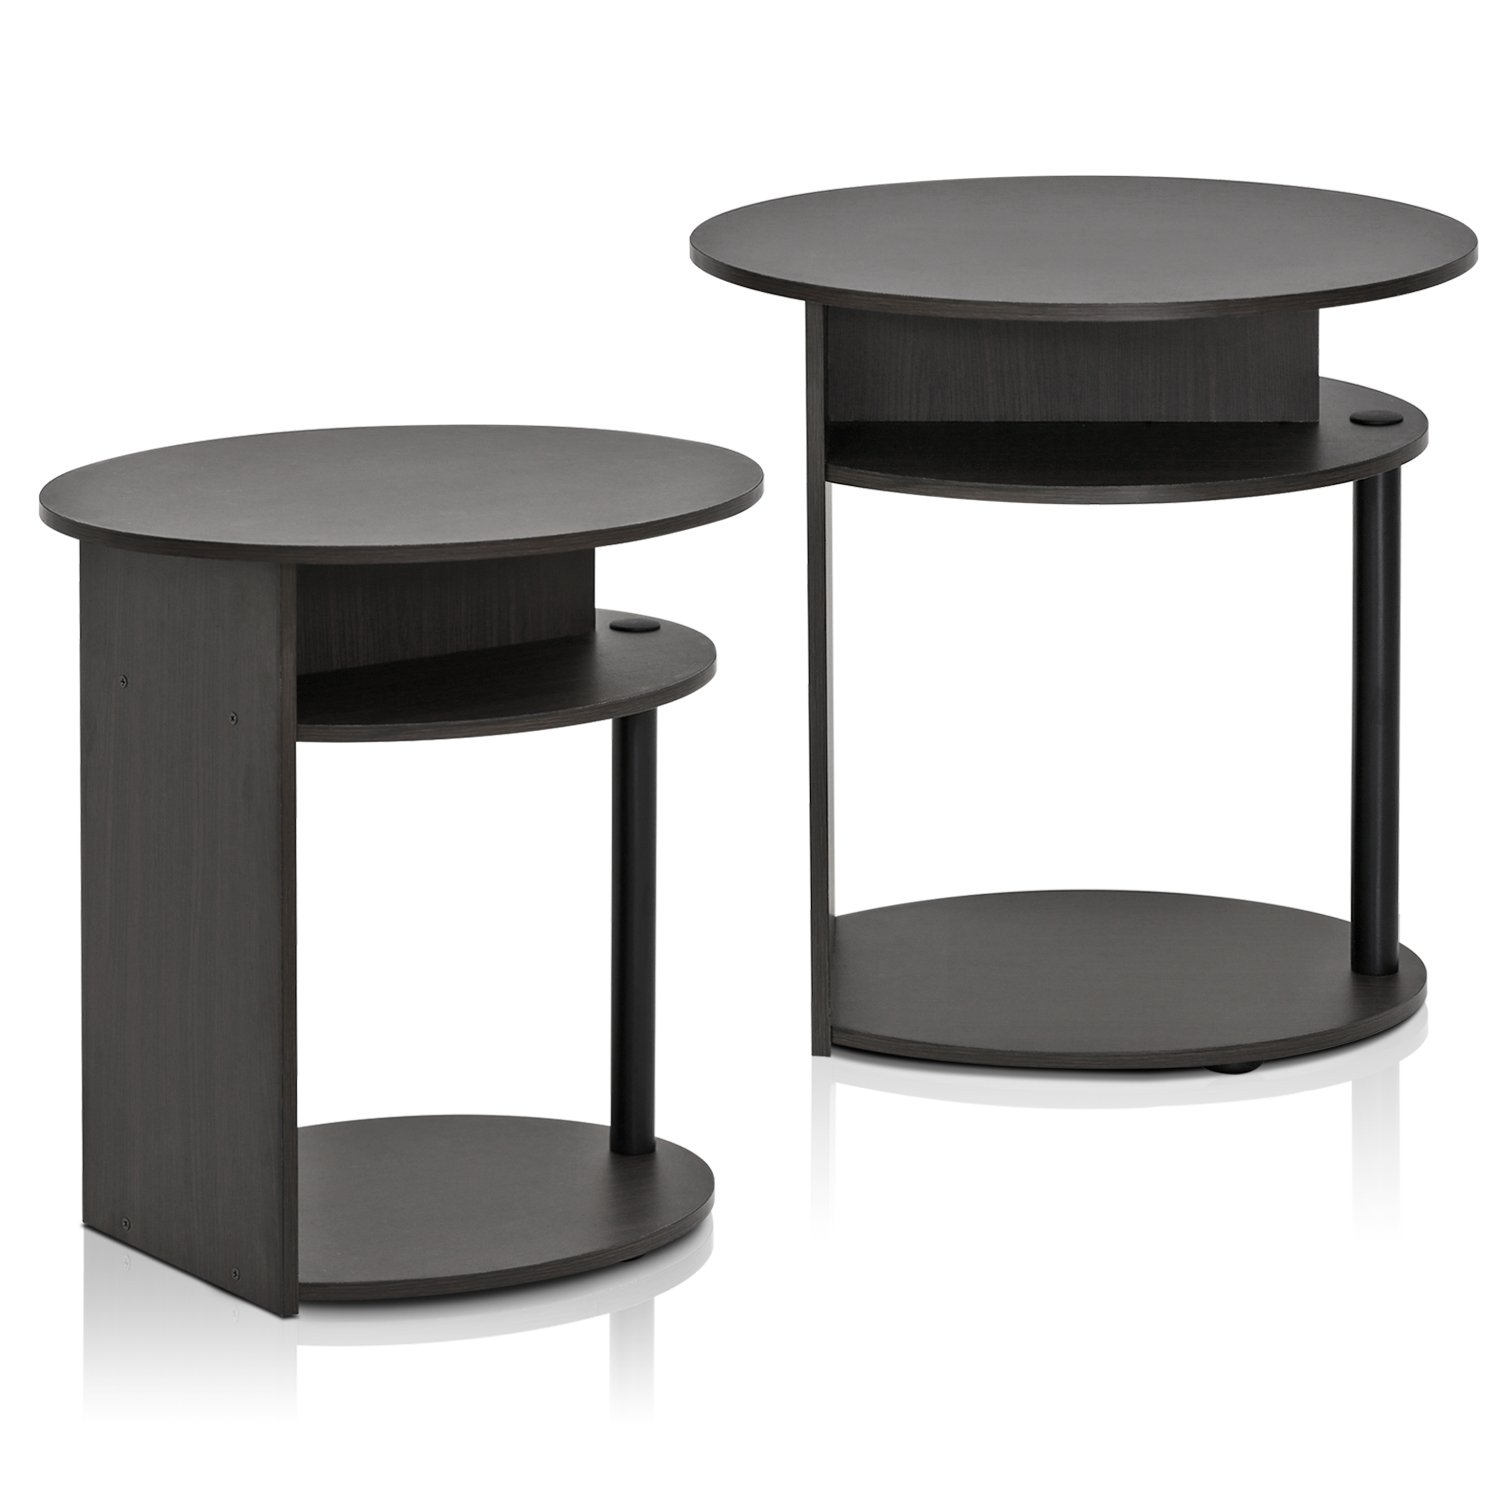 Furinno JAYA Simple Design Oval End Table Set of 2, Walnut, 2-15080WNBK